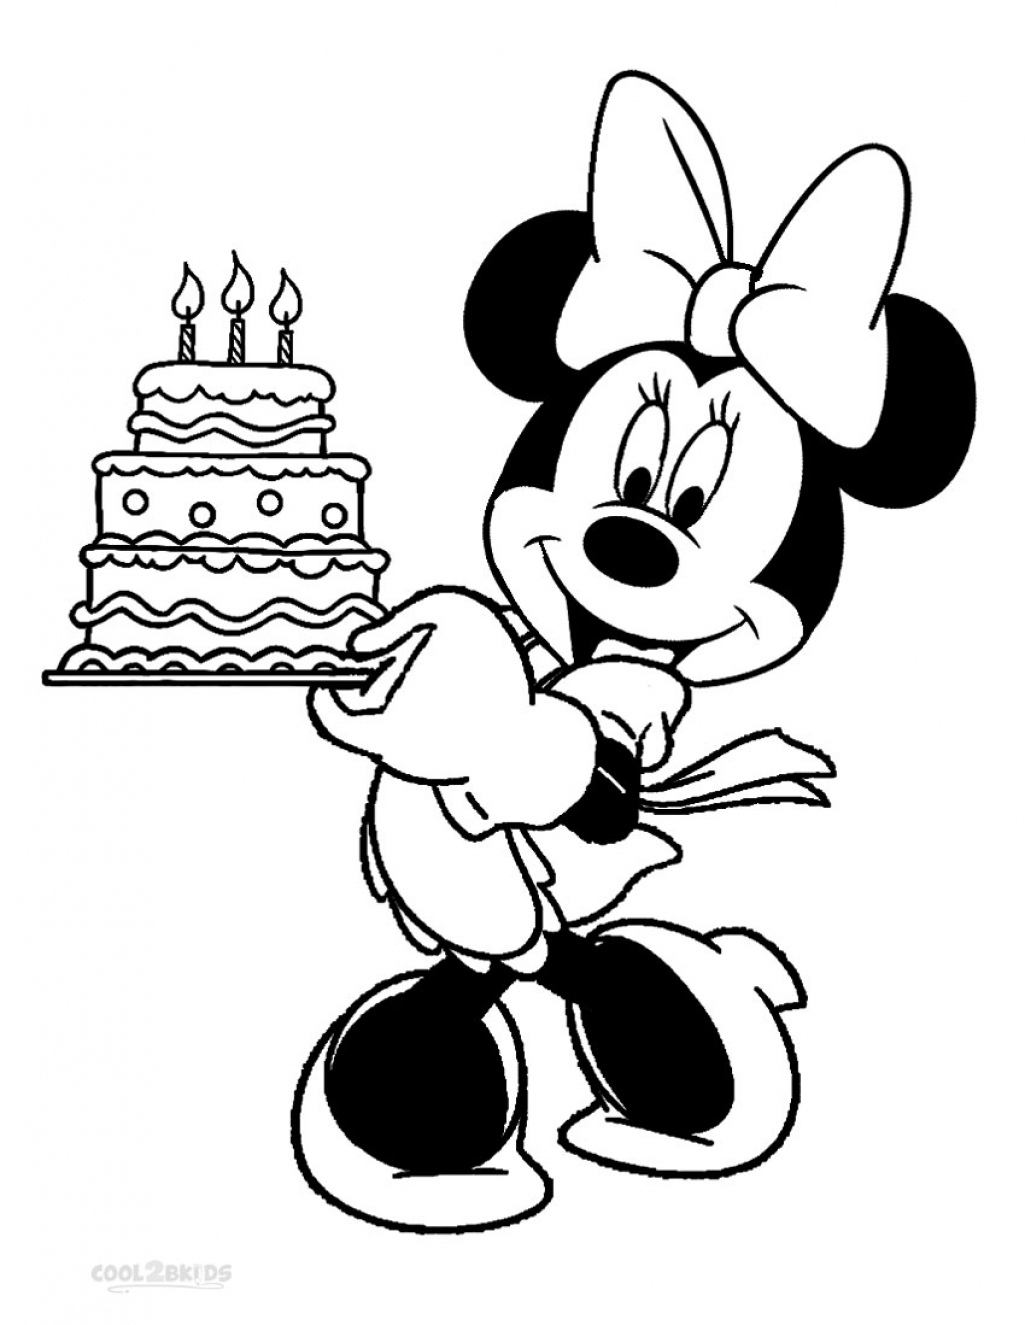 1025x1325 Free Disney Minnie Mouse Coloring Pages